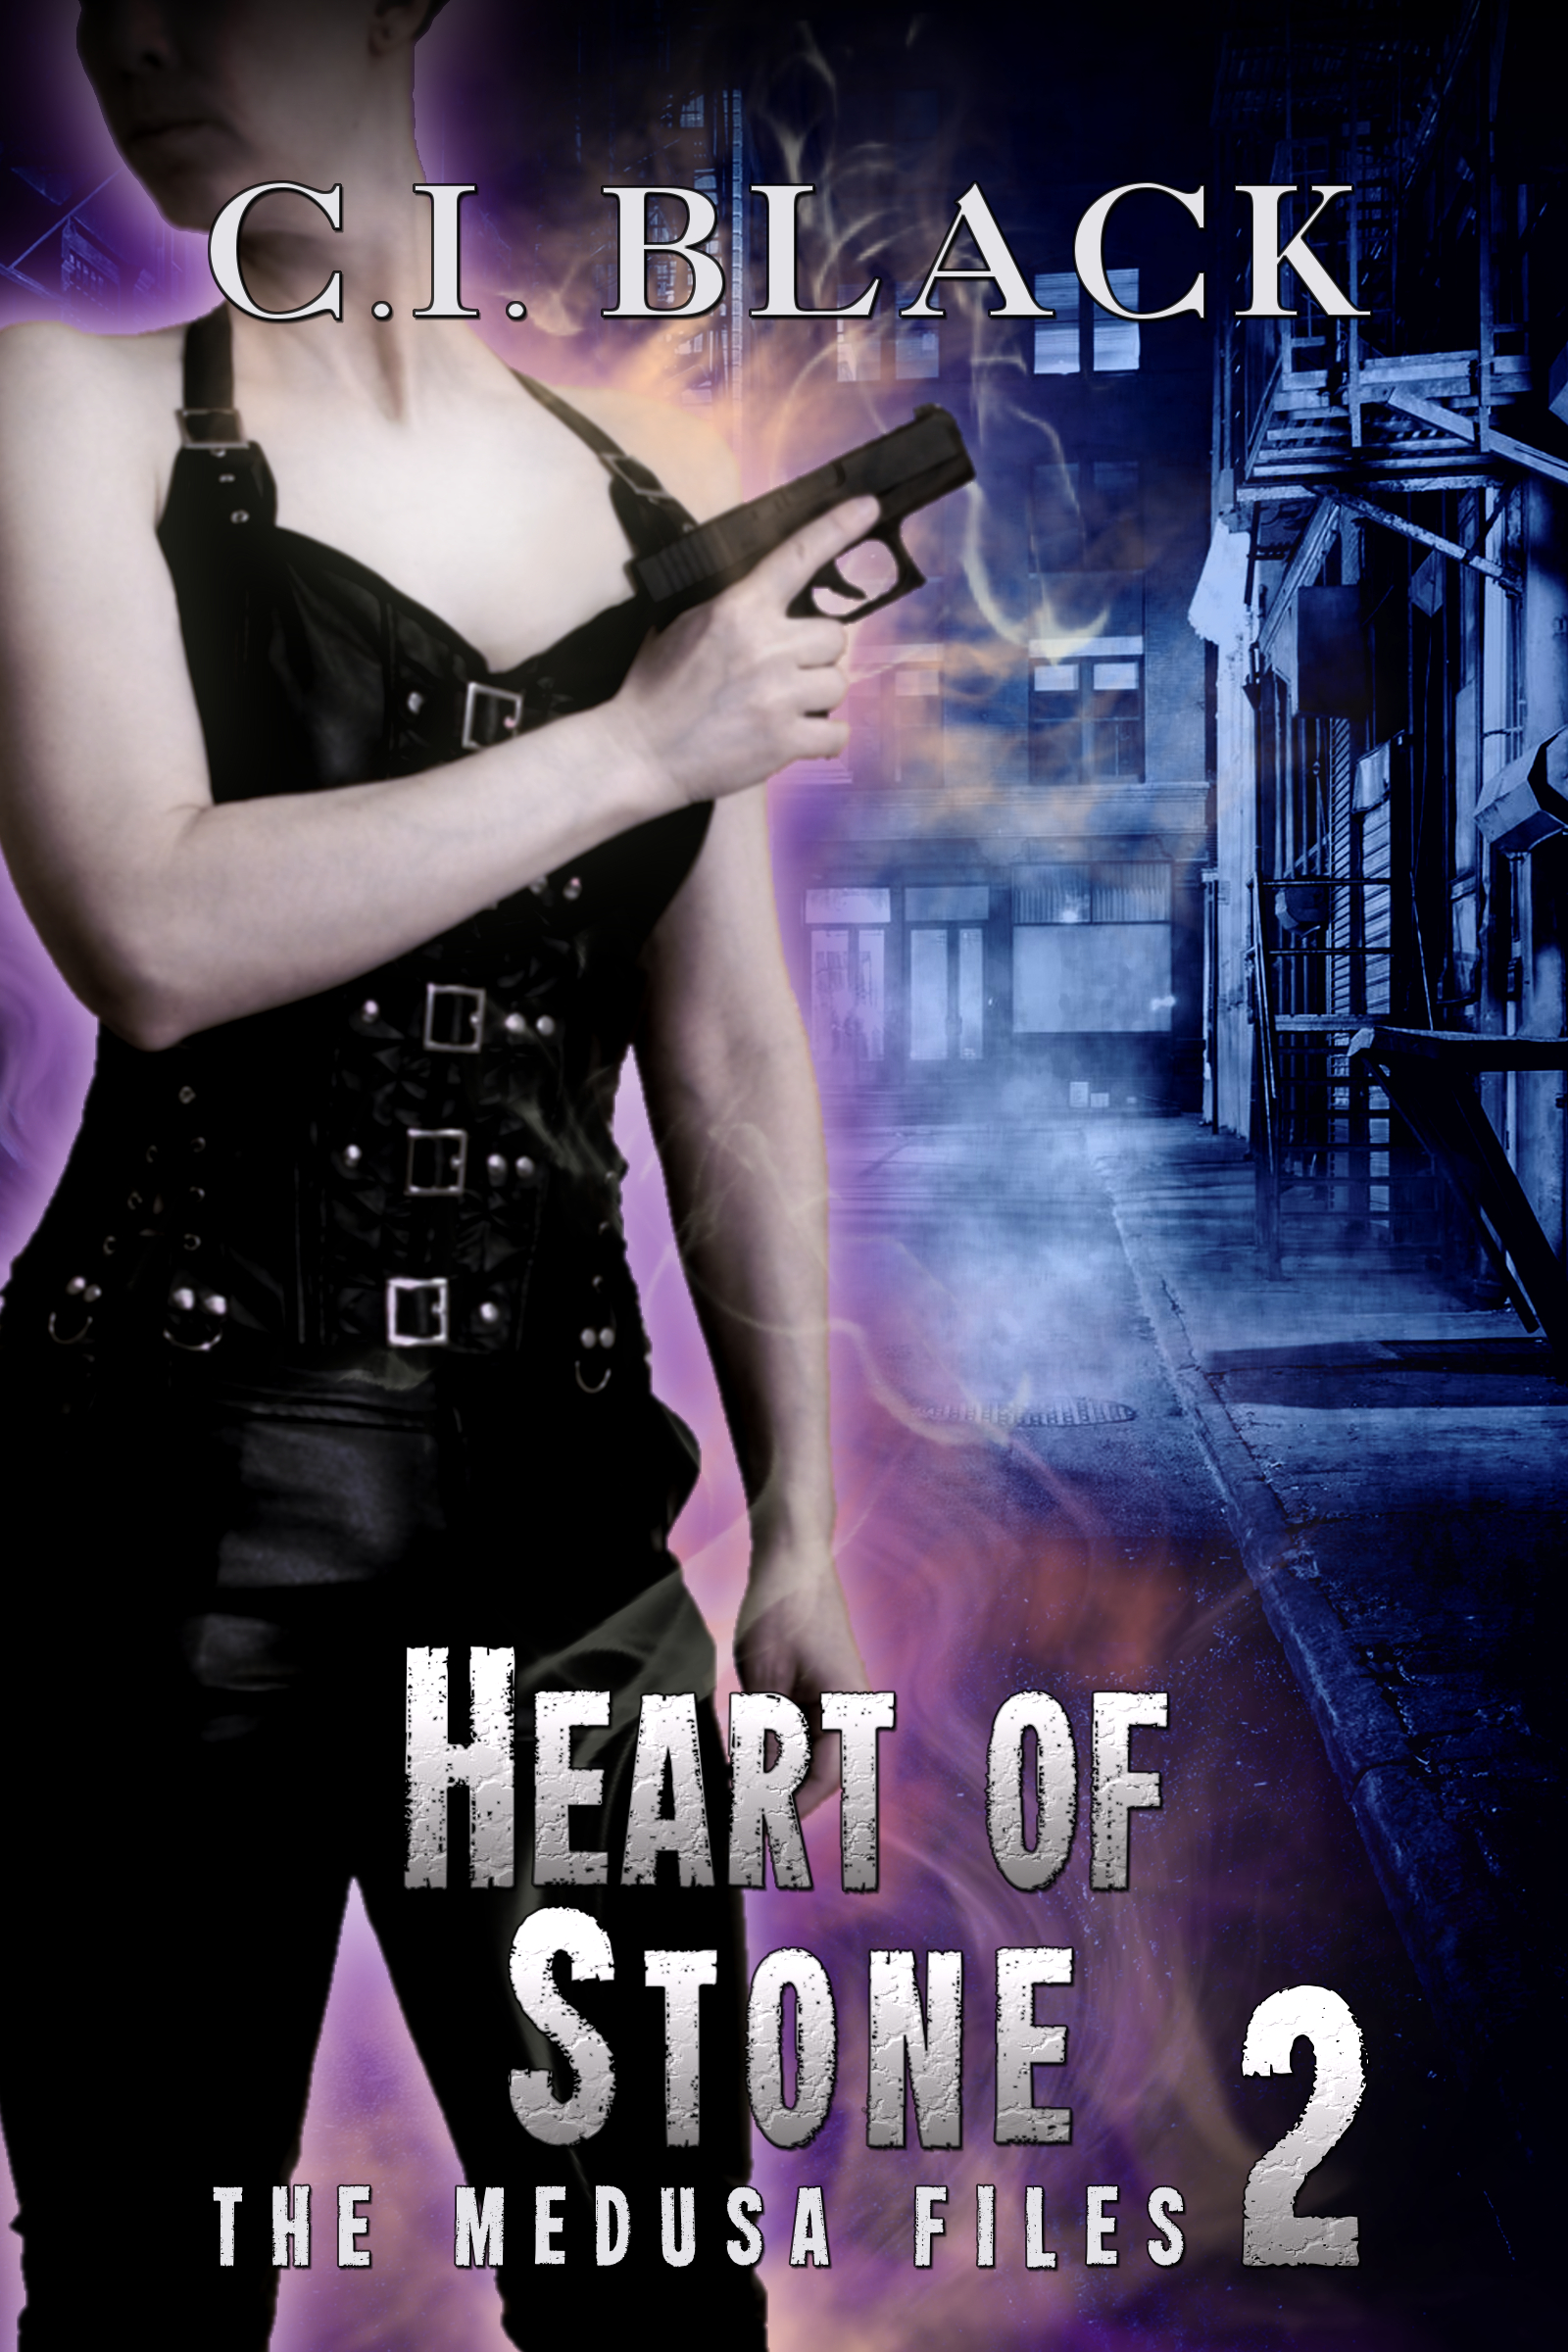 The Medusa Files, case 2: Heart of Stone, an urban fantasy / paranormal romance and the second book in the Medusa Files series by C.I. Black